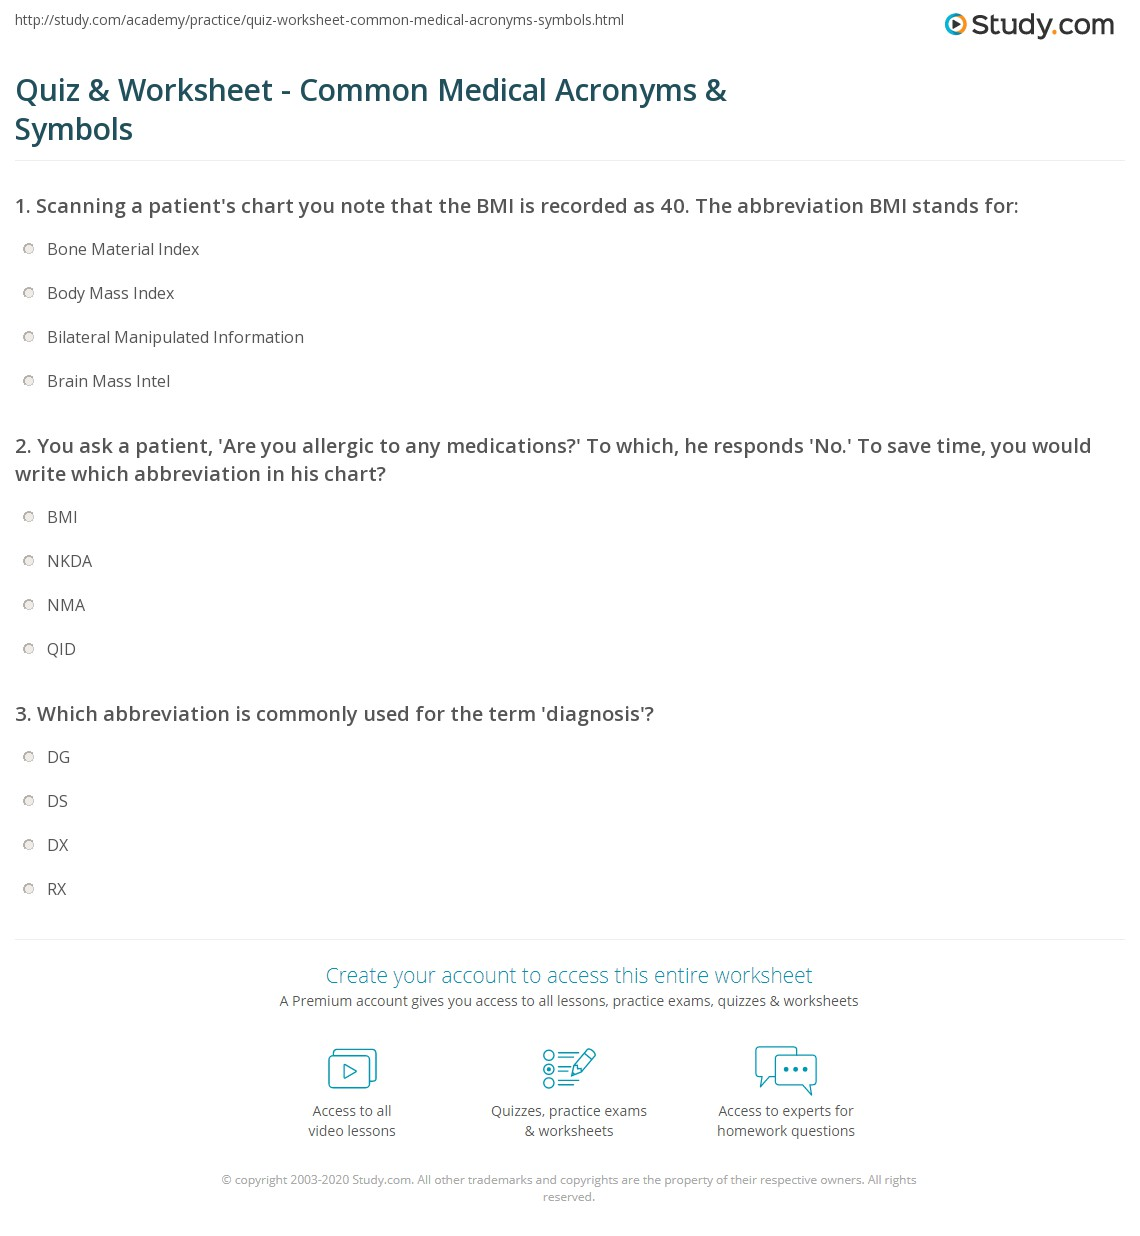 S with line on top medical abbreviation - Print Common Medical Acronyms Symbols Worksheet